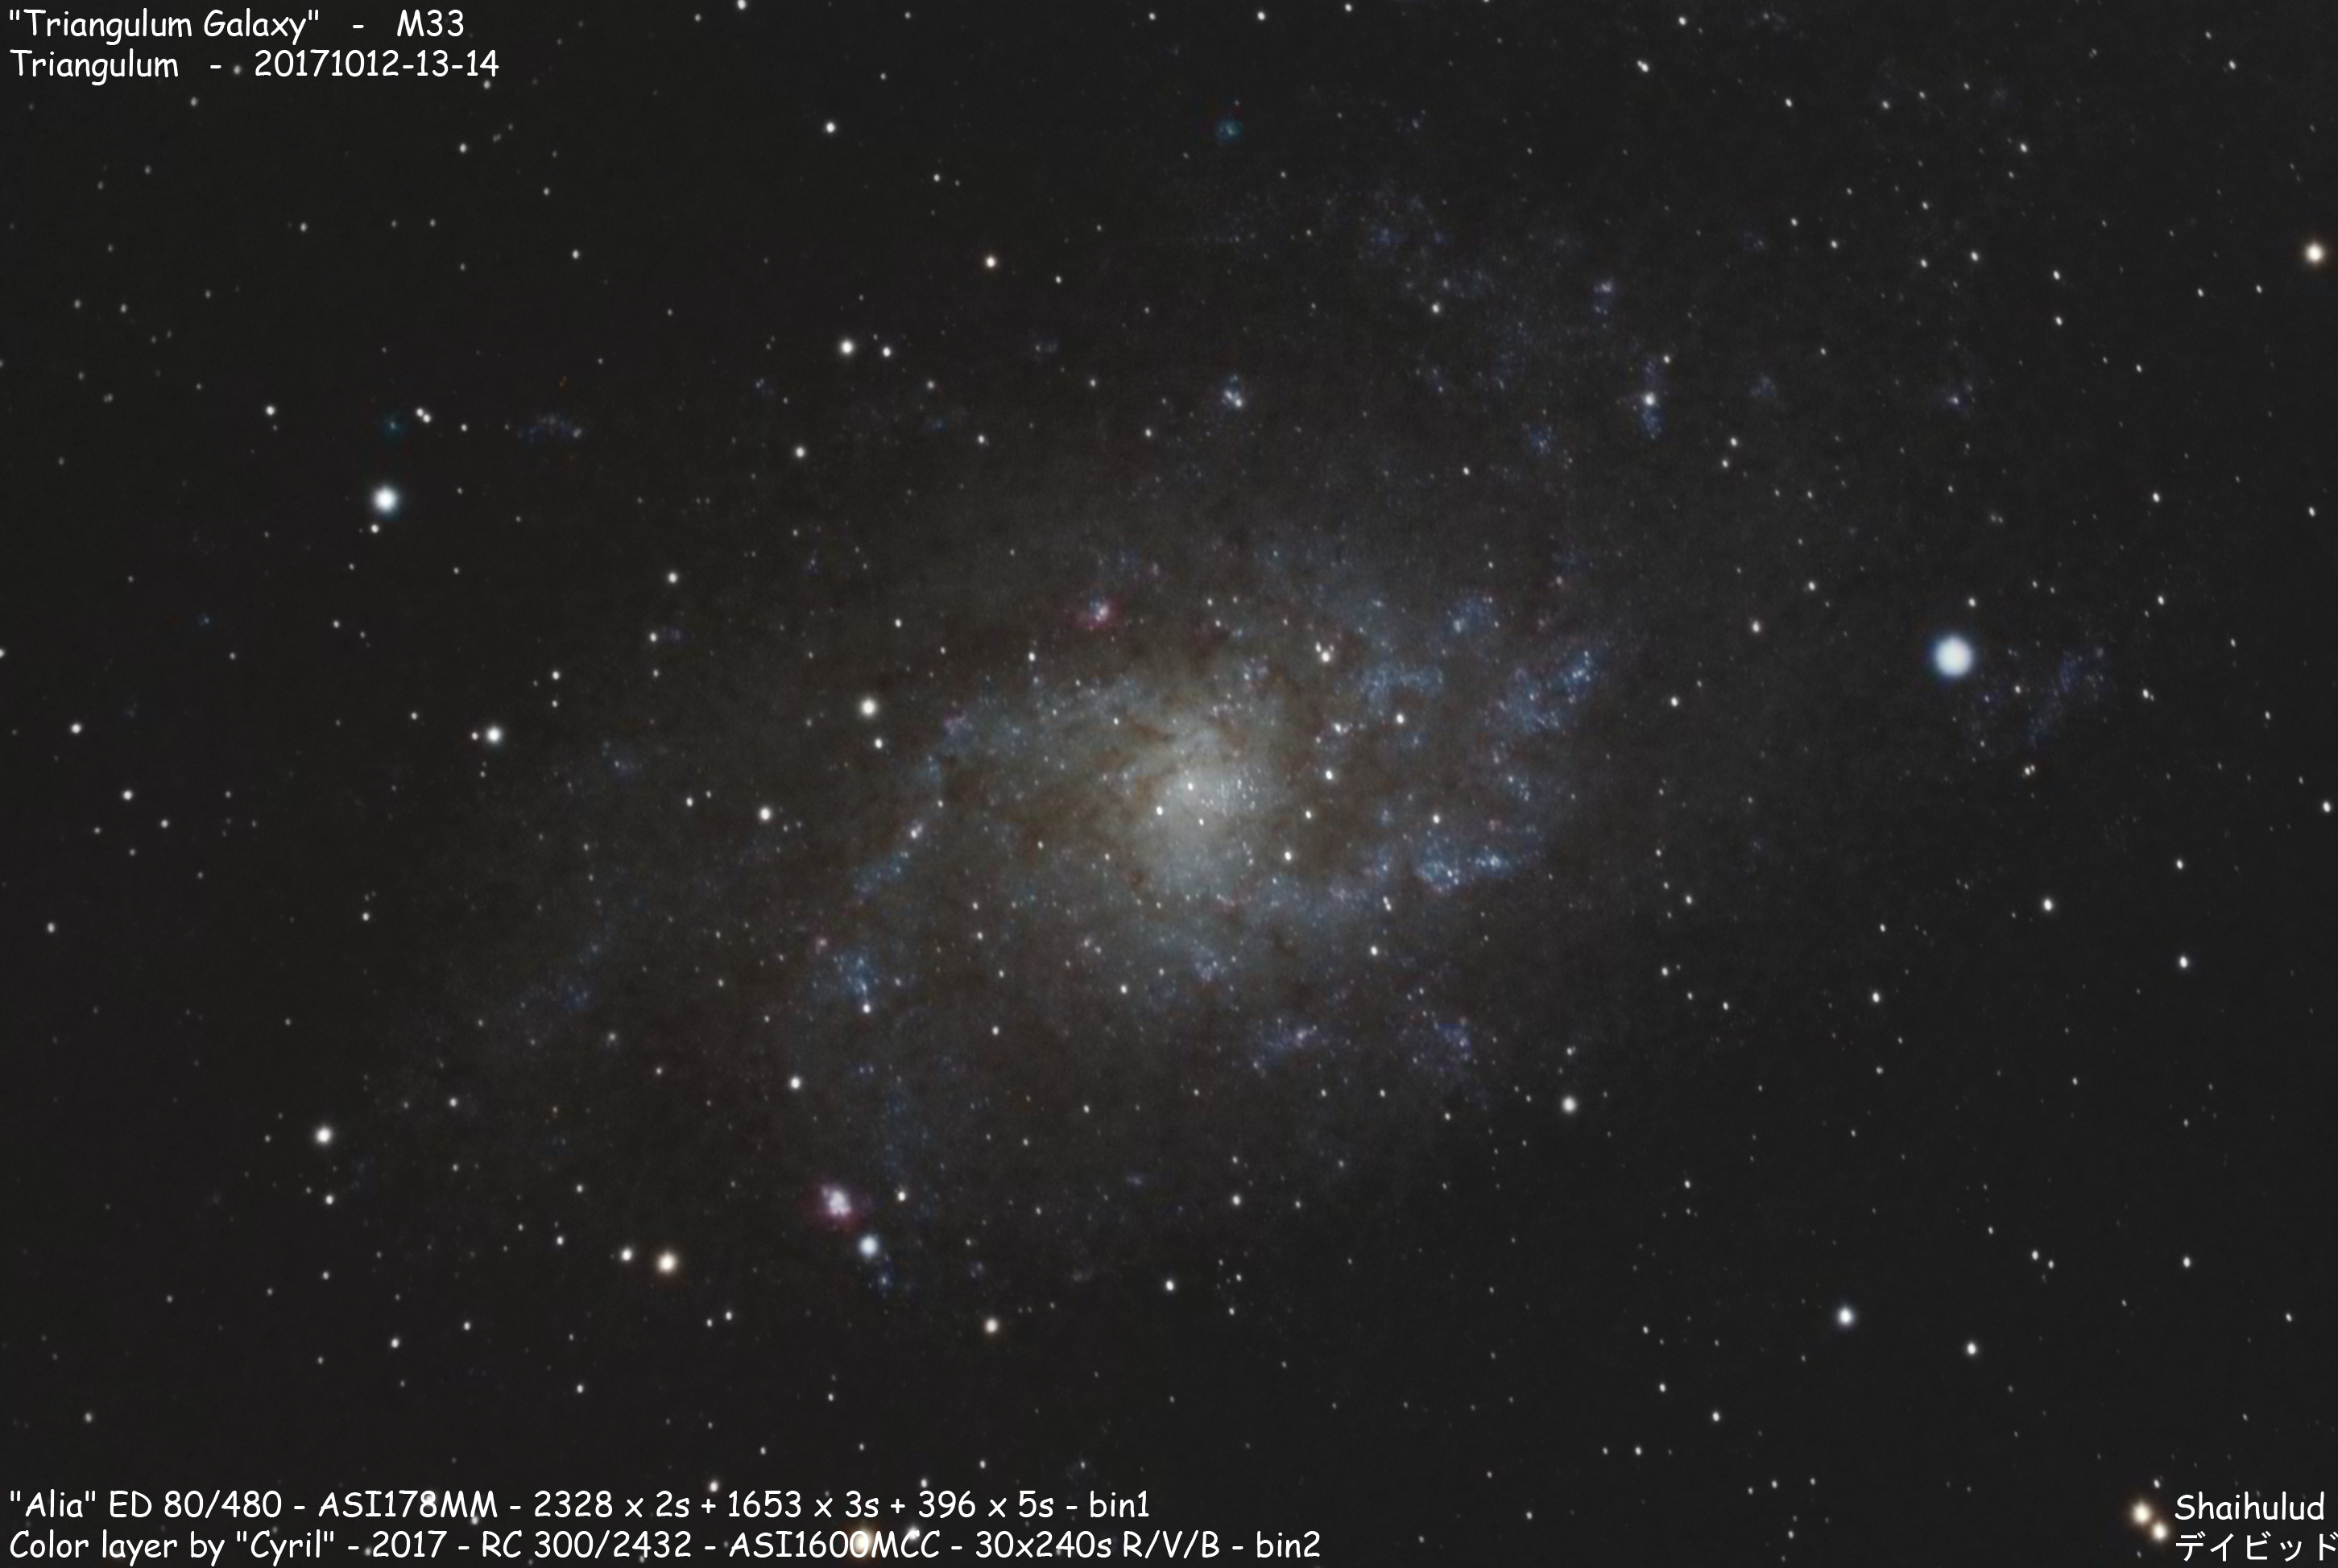 Triangulum Galaxy M33 (Shot from the city center of Reims)